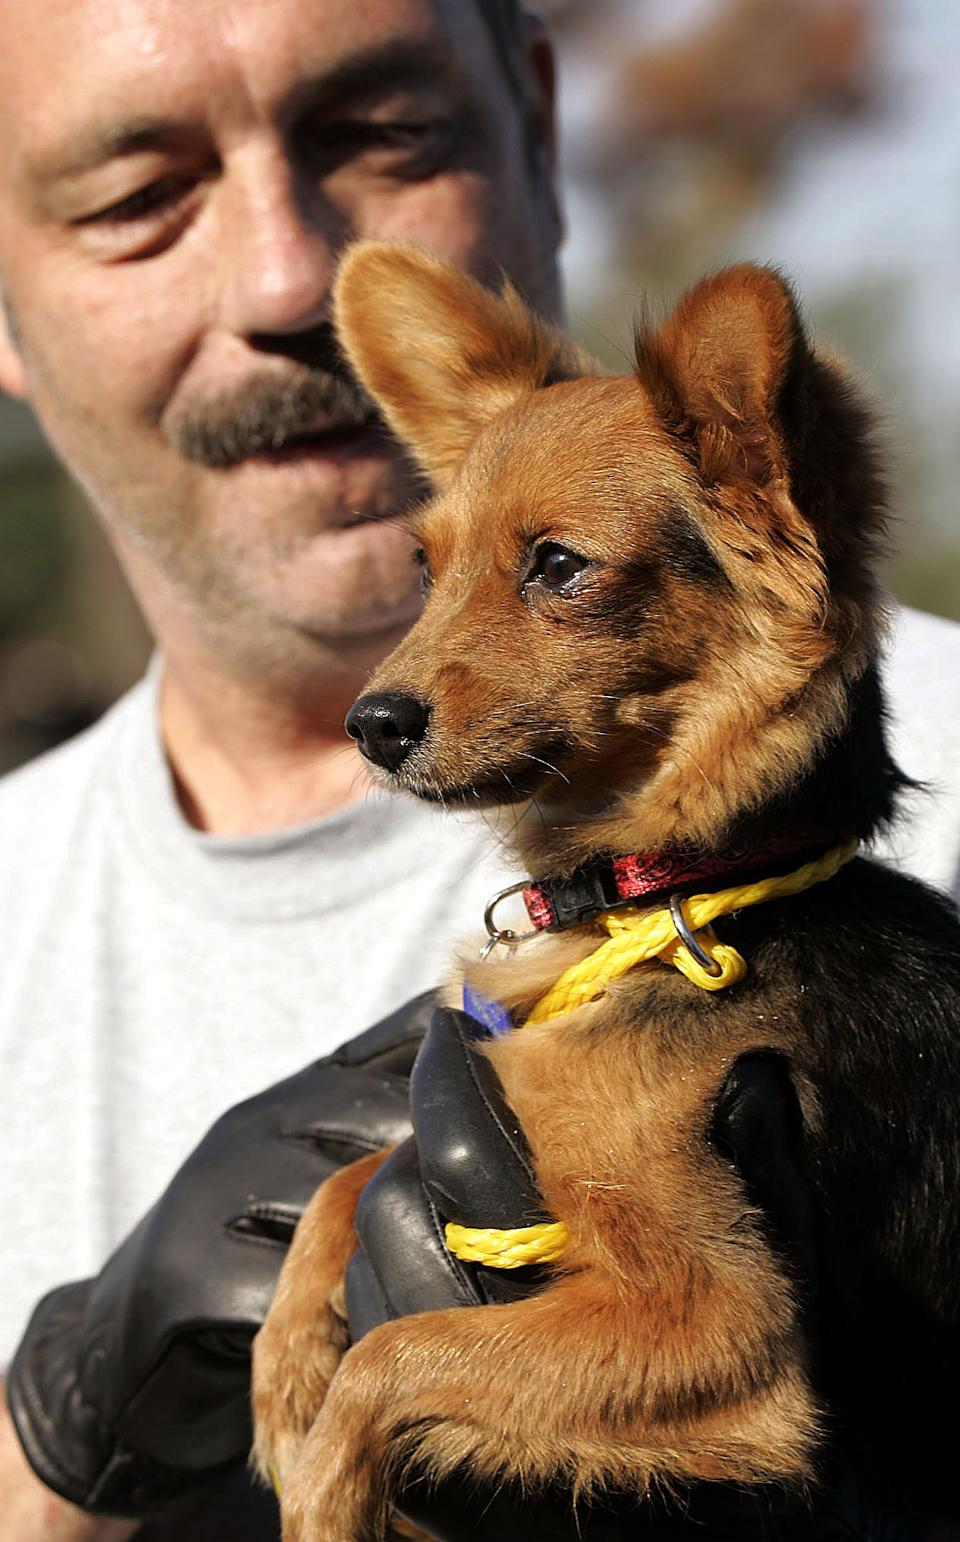 In this Oct. 15, 2005 photo, dog bite expert Jim Crosby, from Jacksonville, Fla., holds a Pomeranian mix dog at  Muttshack Animal Rescue Foundation  shelter in New Orleans, La., Saturday, Oct. 15, 2005.   (AP Photo/Don Ryan)